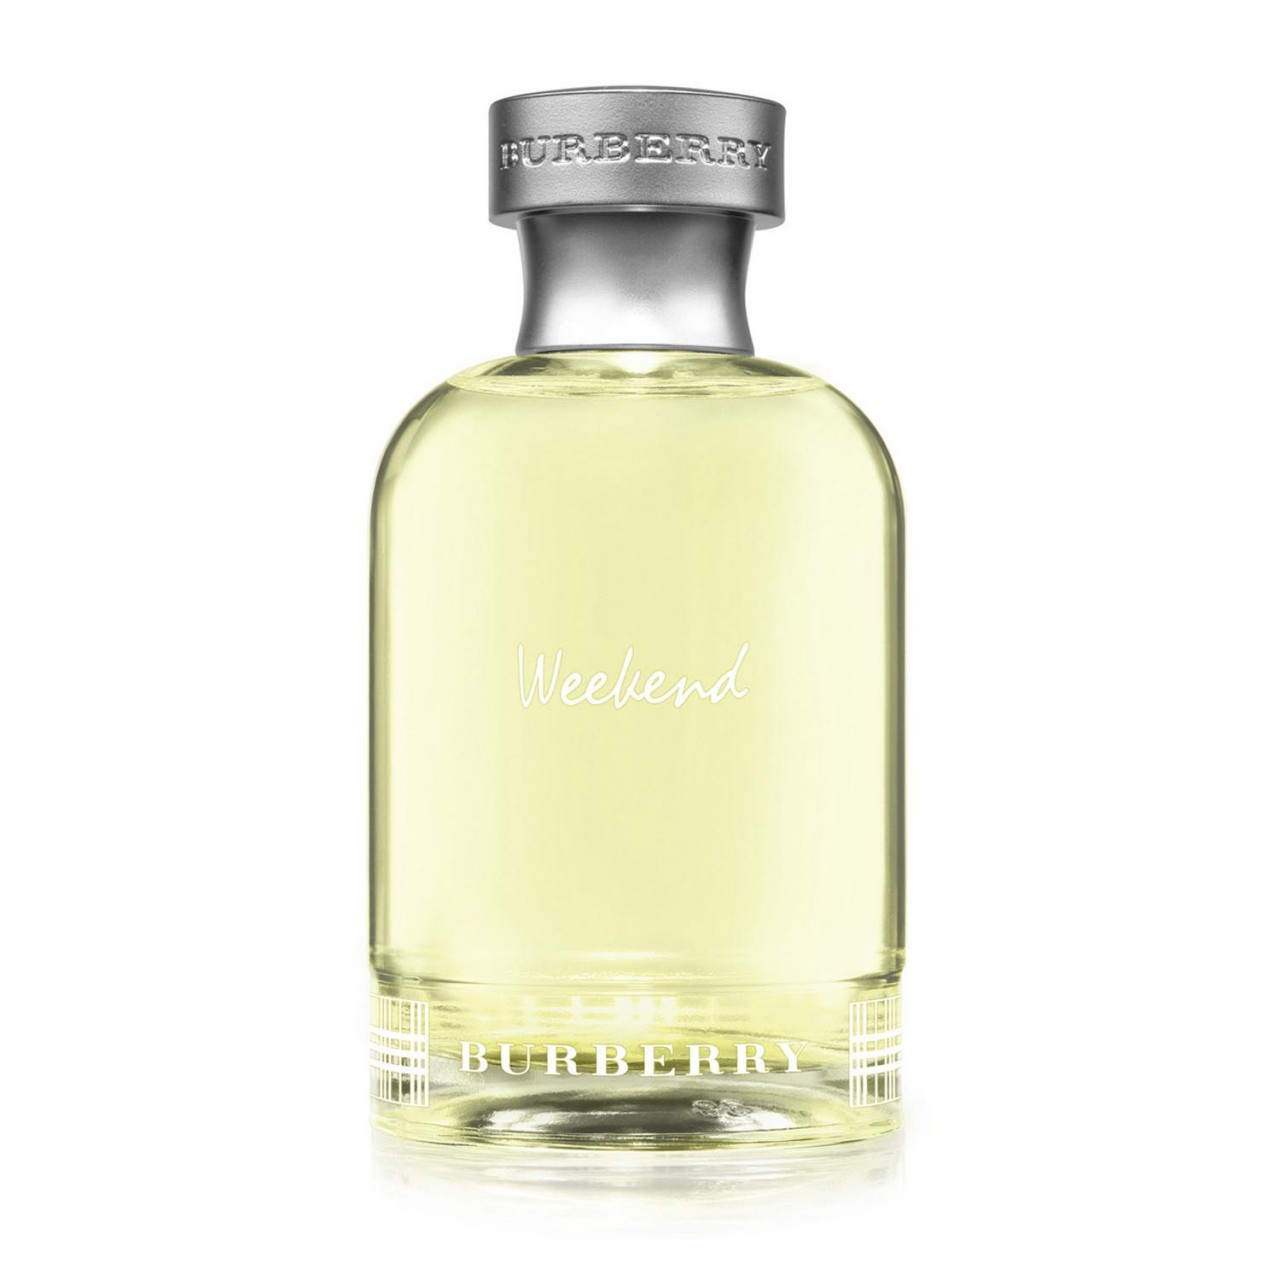 Burberry Weekend Eau de Toilette 100ml